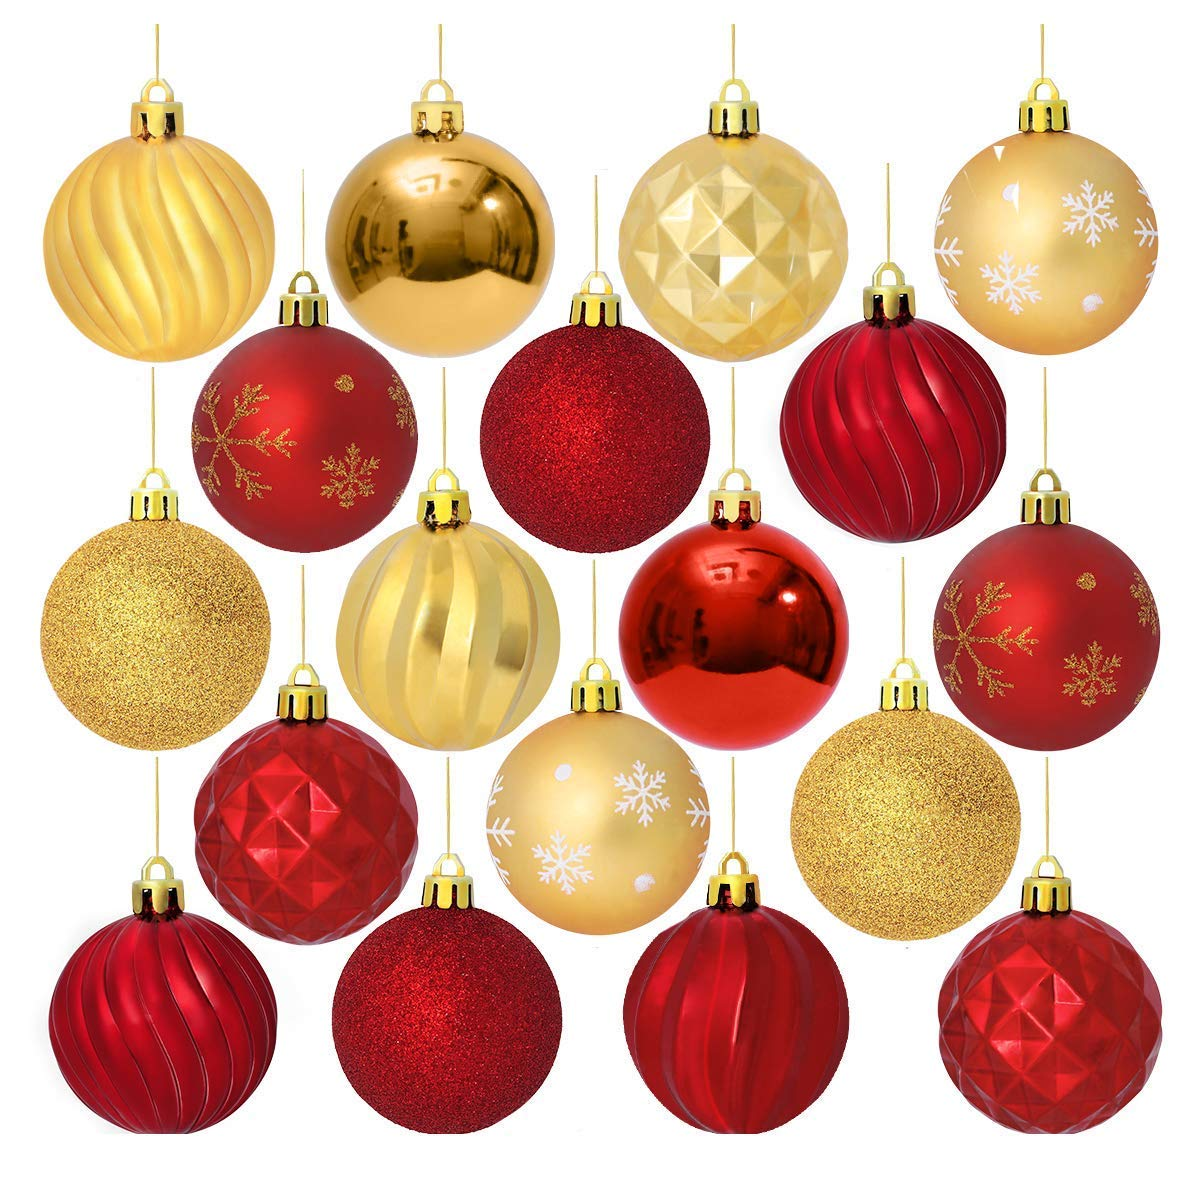 Unomor Christmas Tree Ornaments 6 Patterns 24pack Red And Gold Shatterproof Christmas Ornaments 60mm